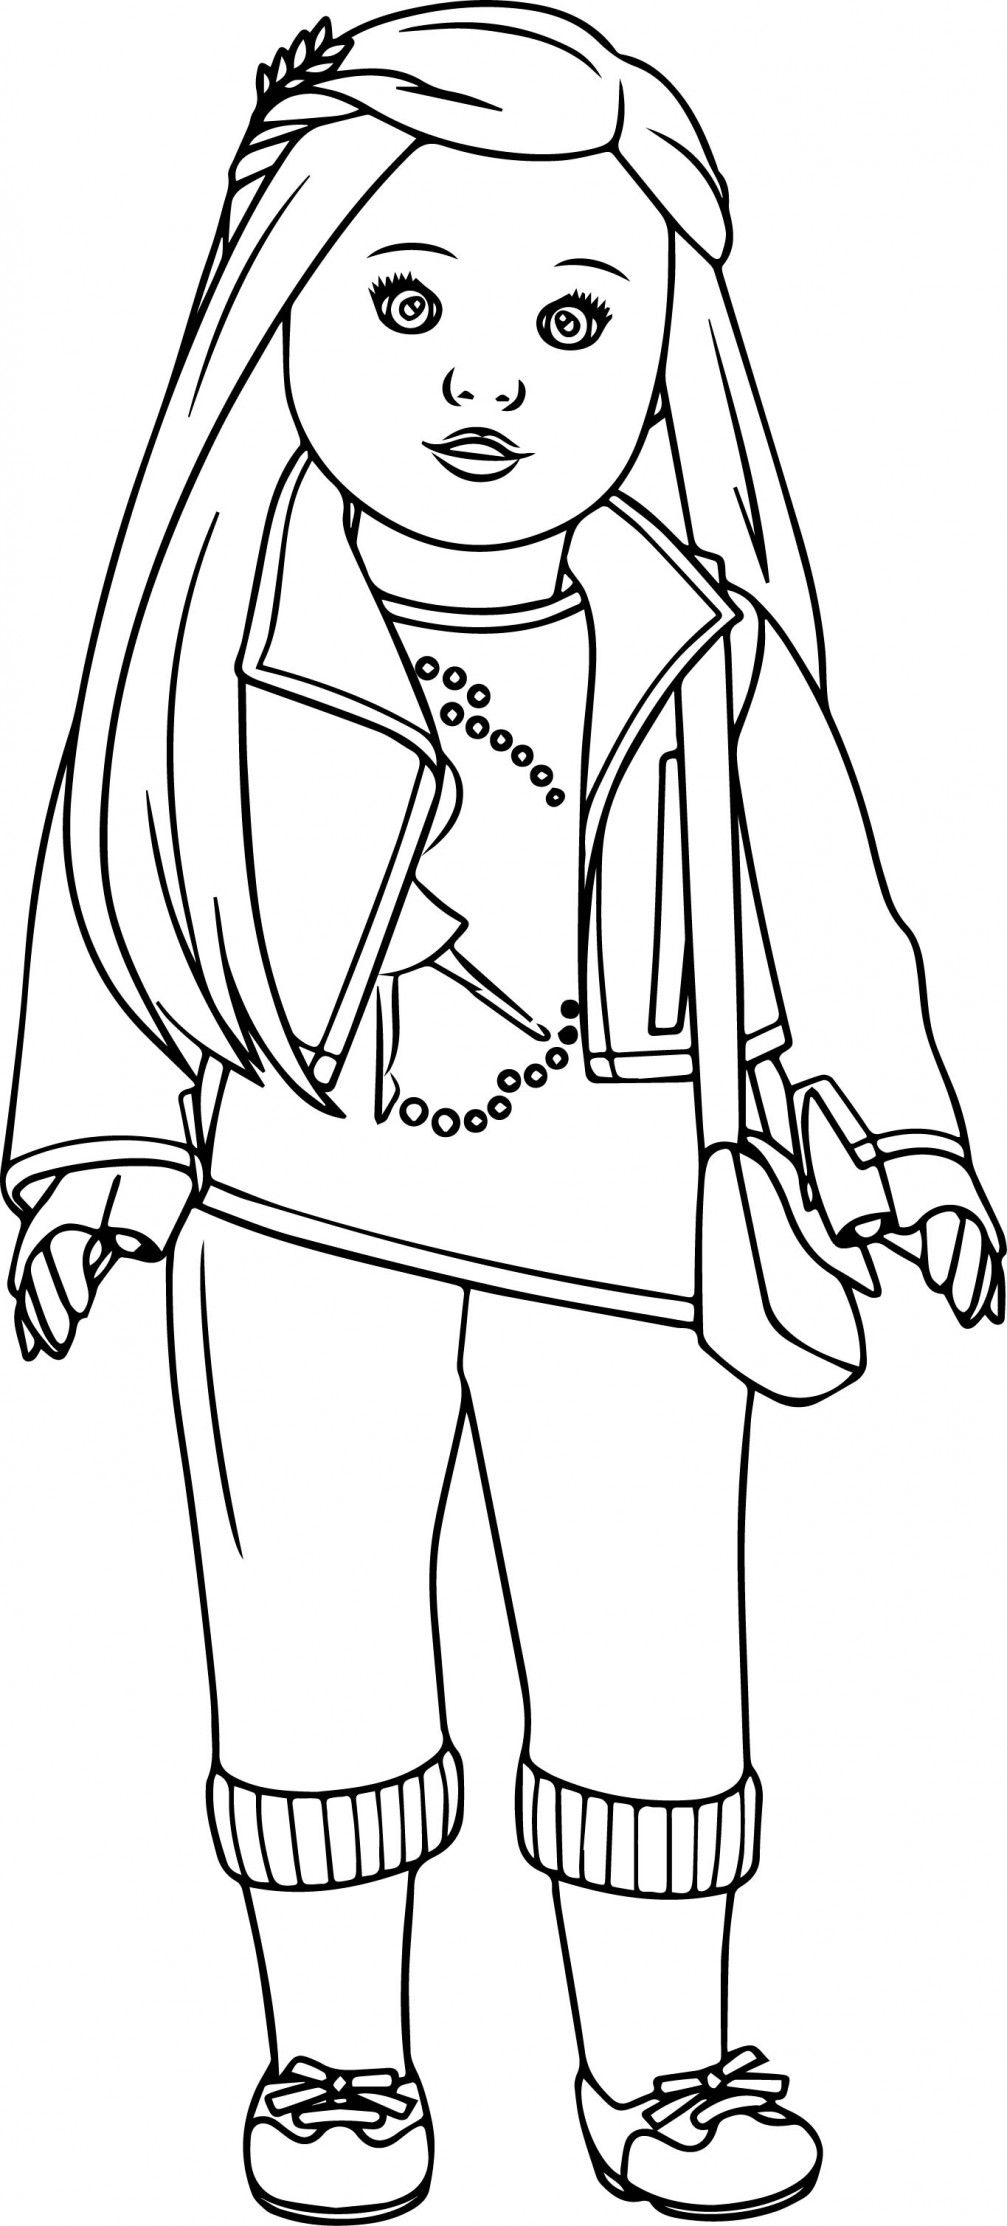 american girl coloring sheets coloring pages of american girl dolls coloring pages for girl coloring sheets american